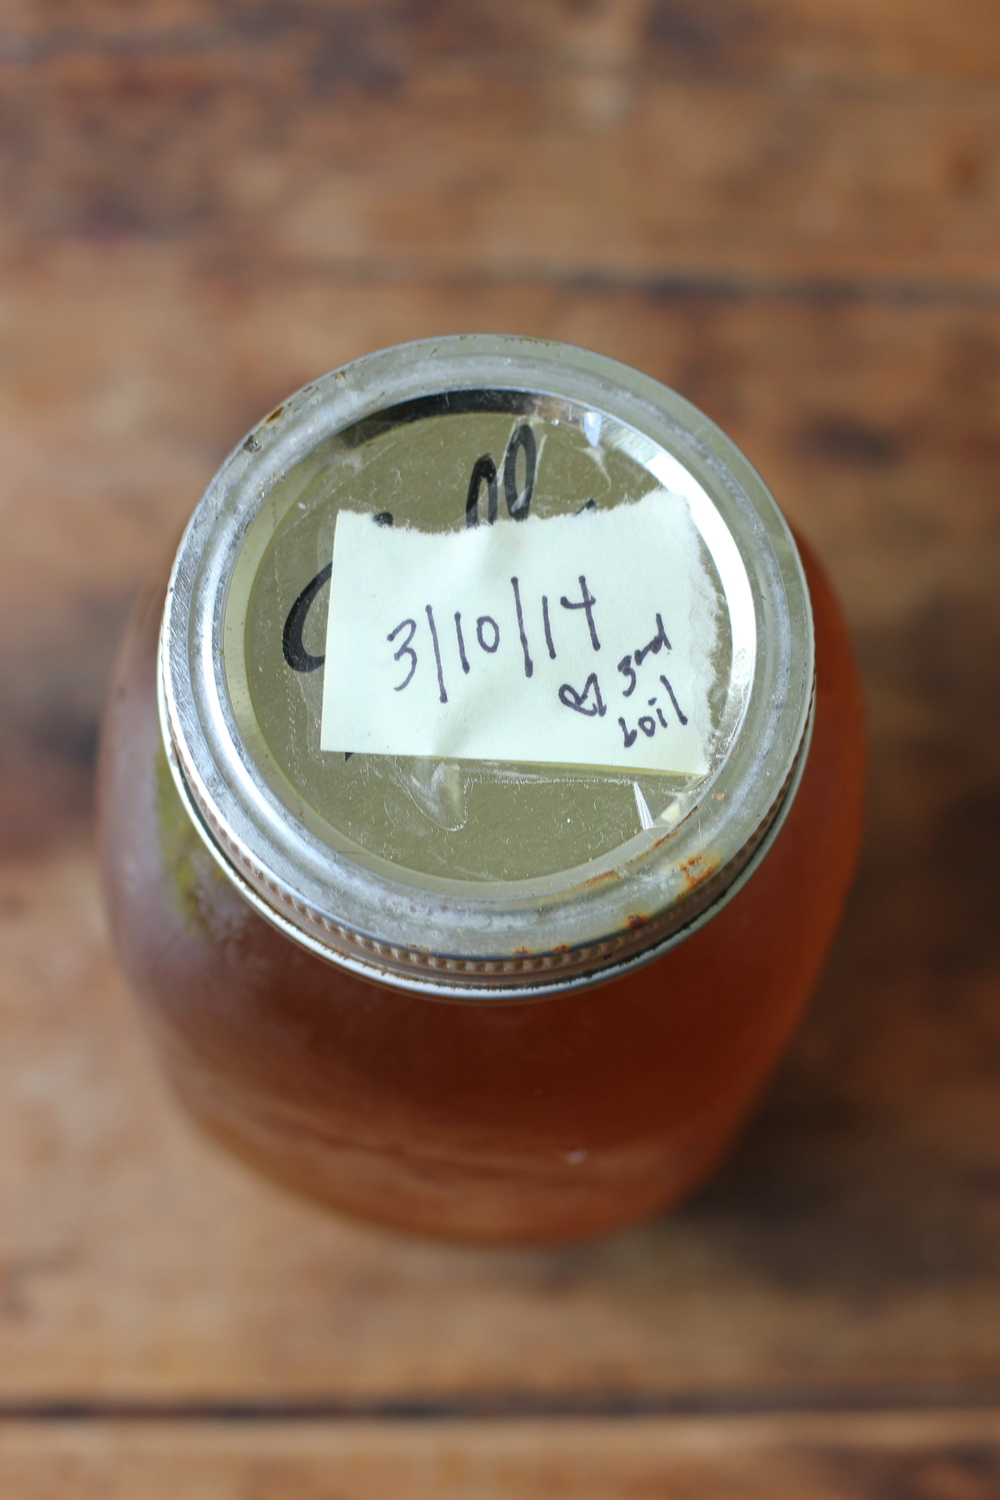 always keeping track of our days. we were getting way better than 40:1 sap to syrup ratios.